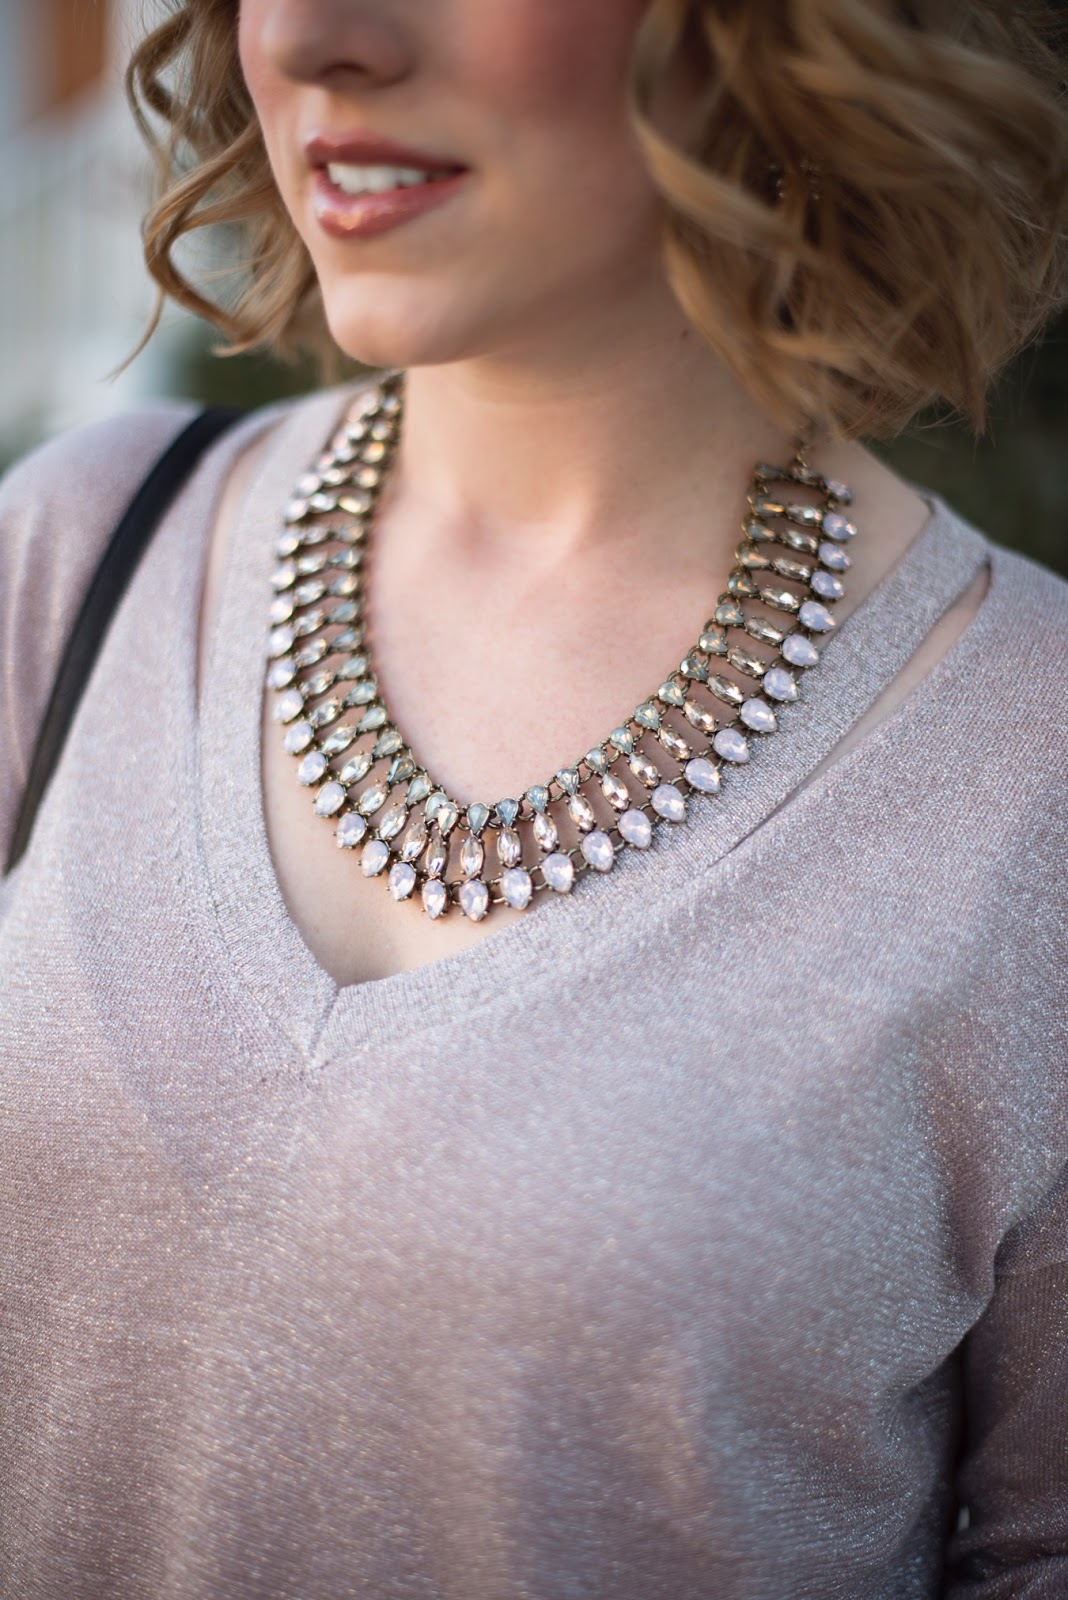 Baublbar Necklace - Something Delightful Blog